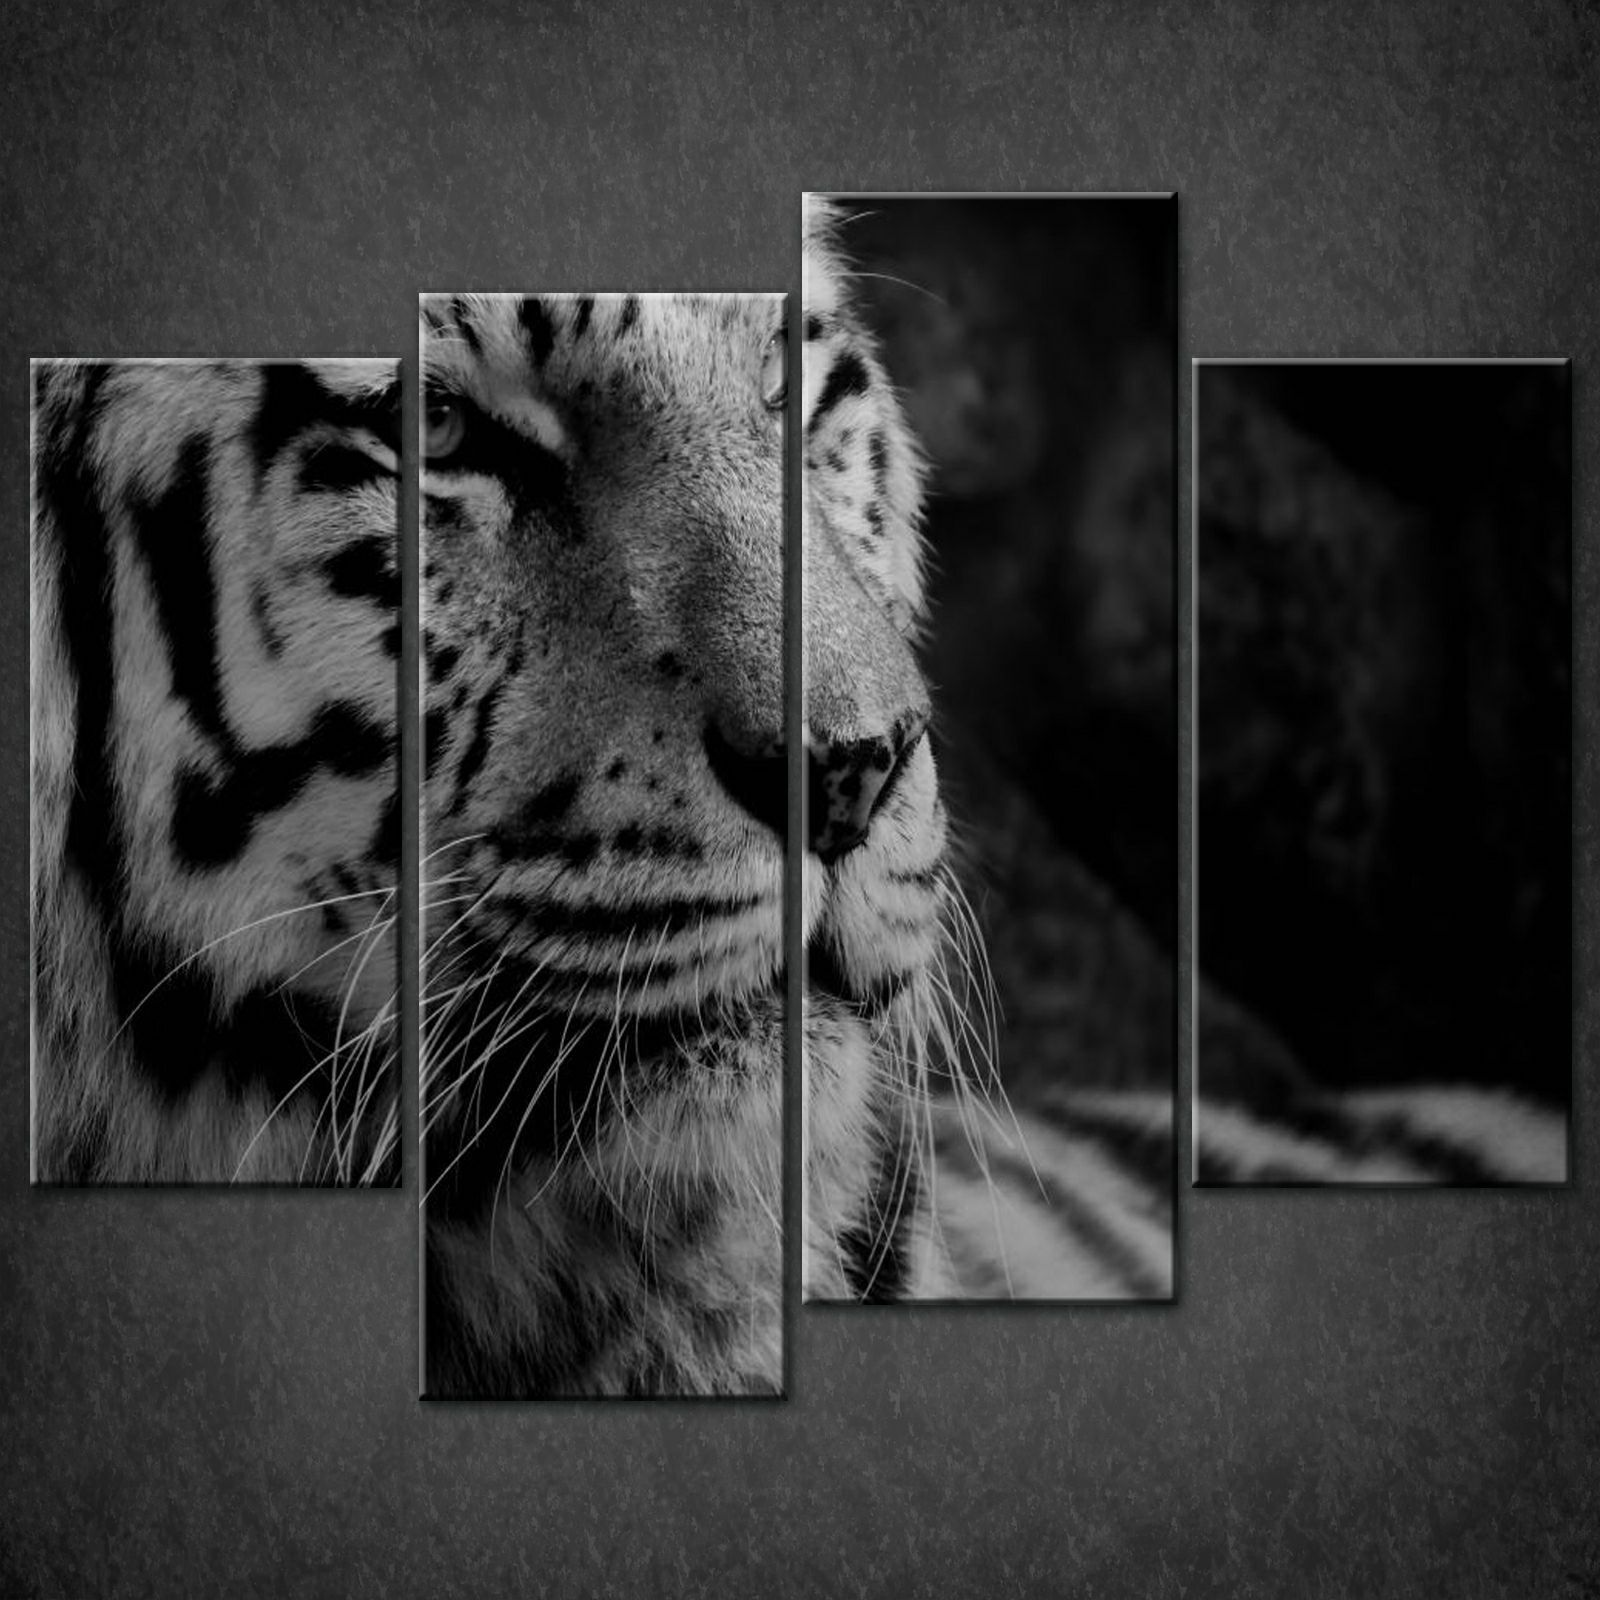 Tiger black white split canvas wall art pictures prints larger sizes available